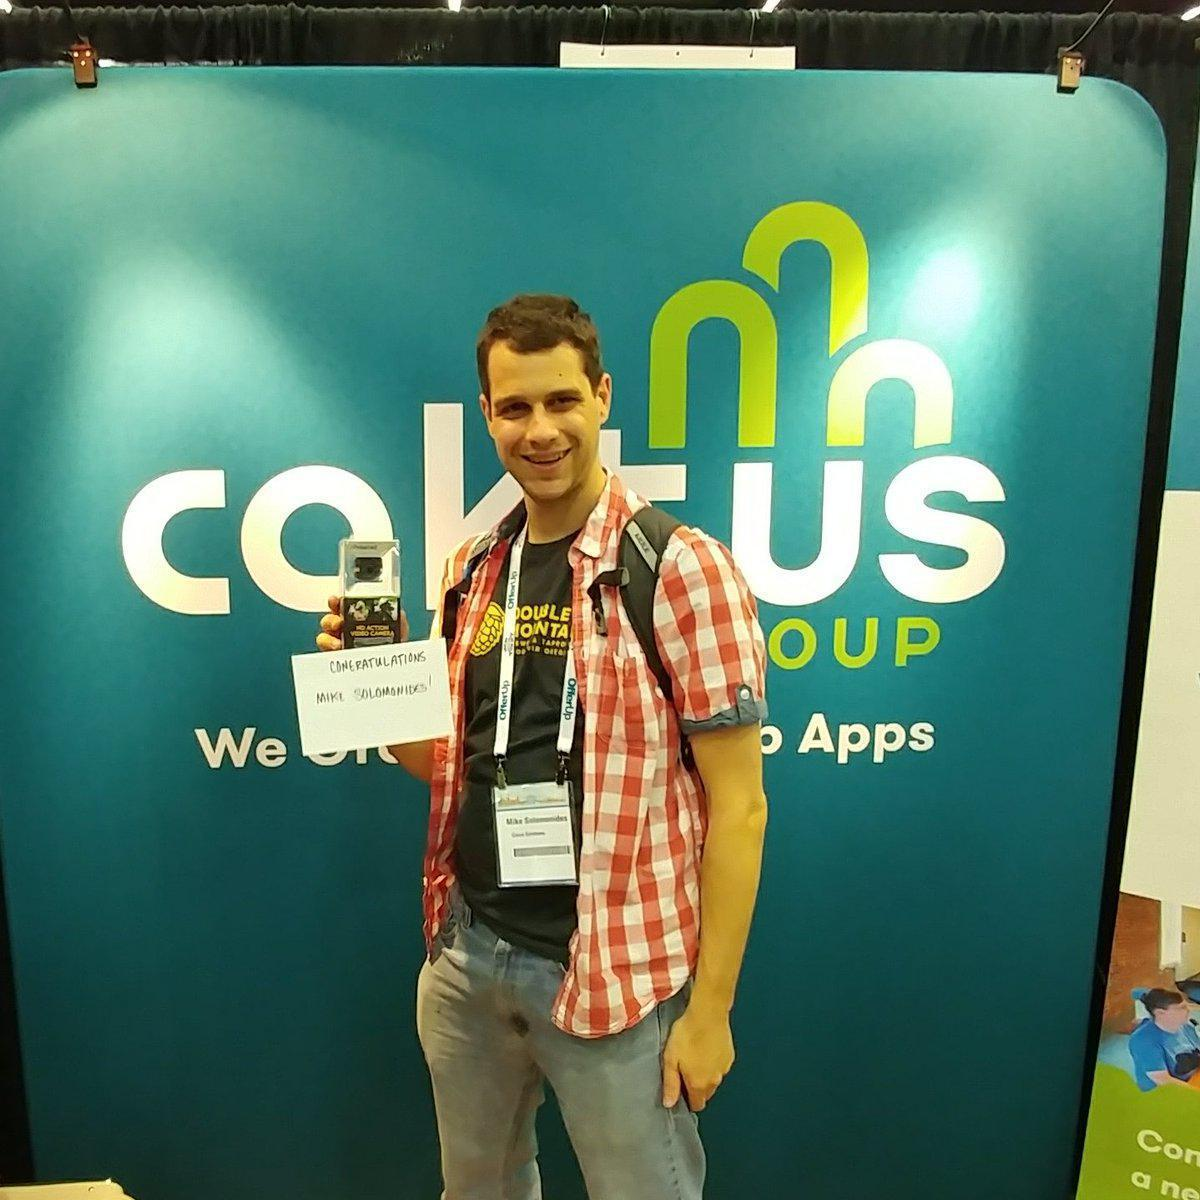 Winner of the prize draw at the Caktus booth